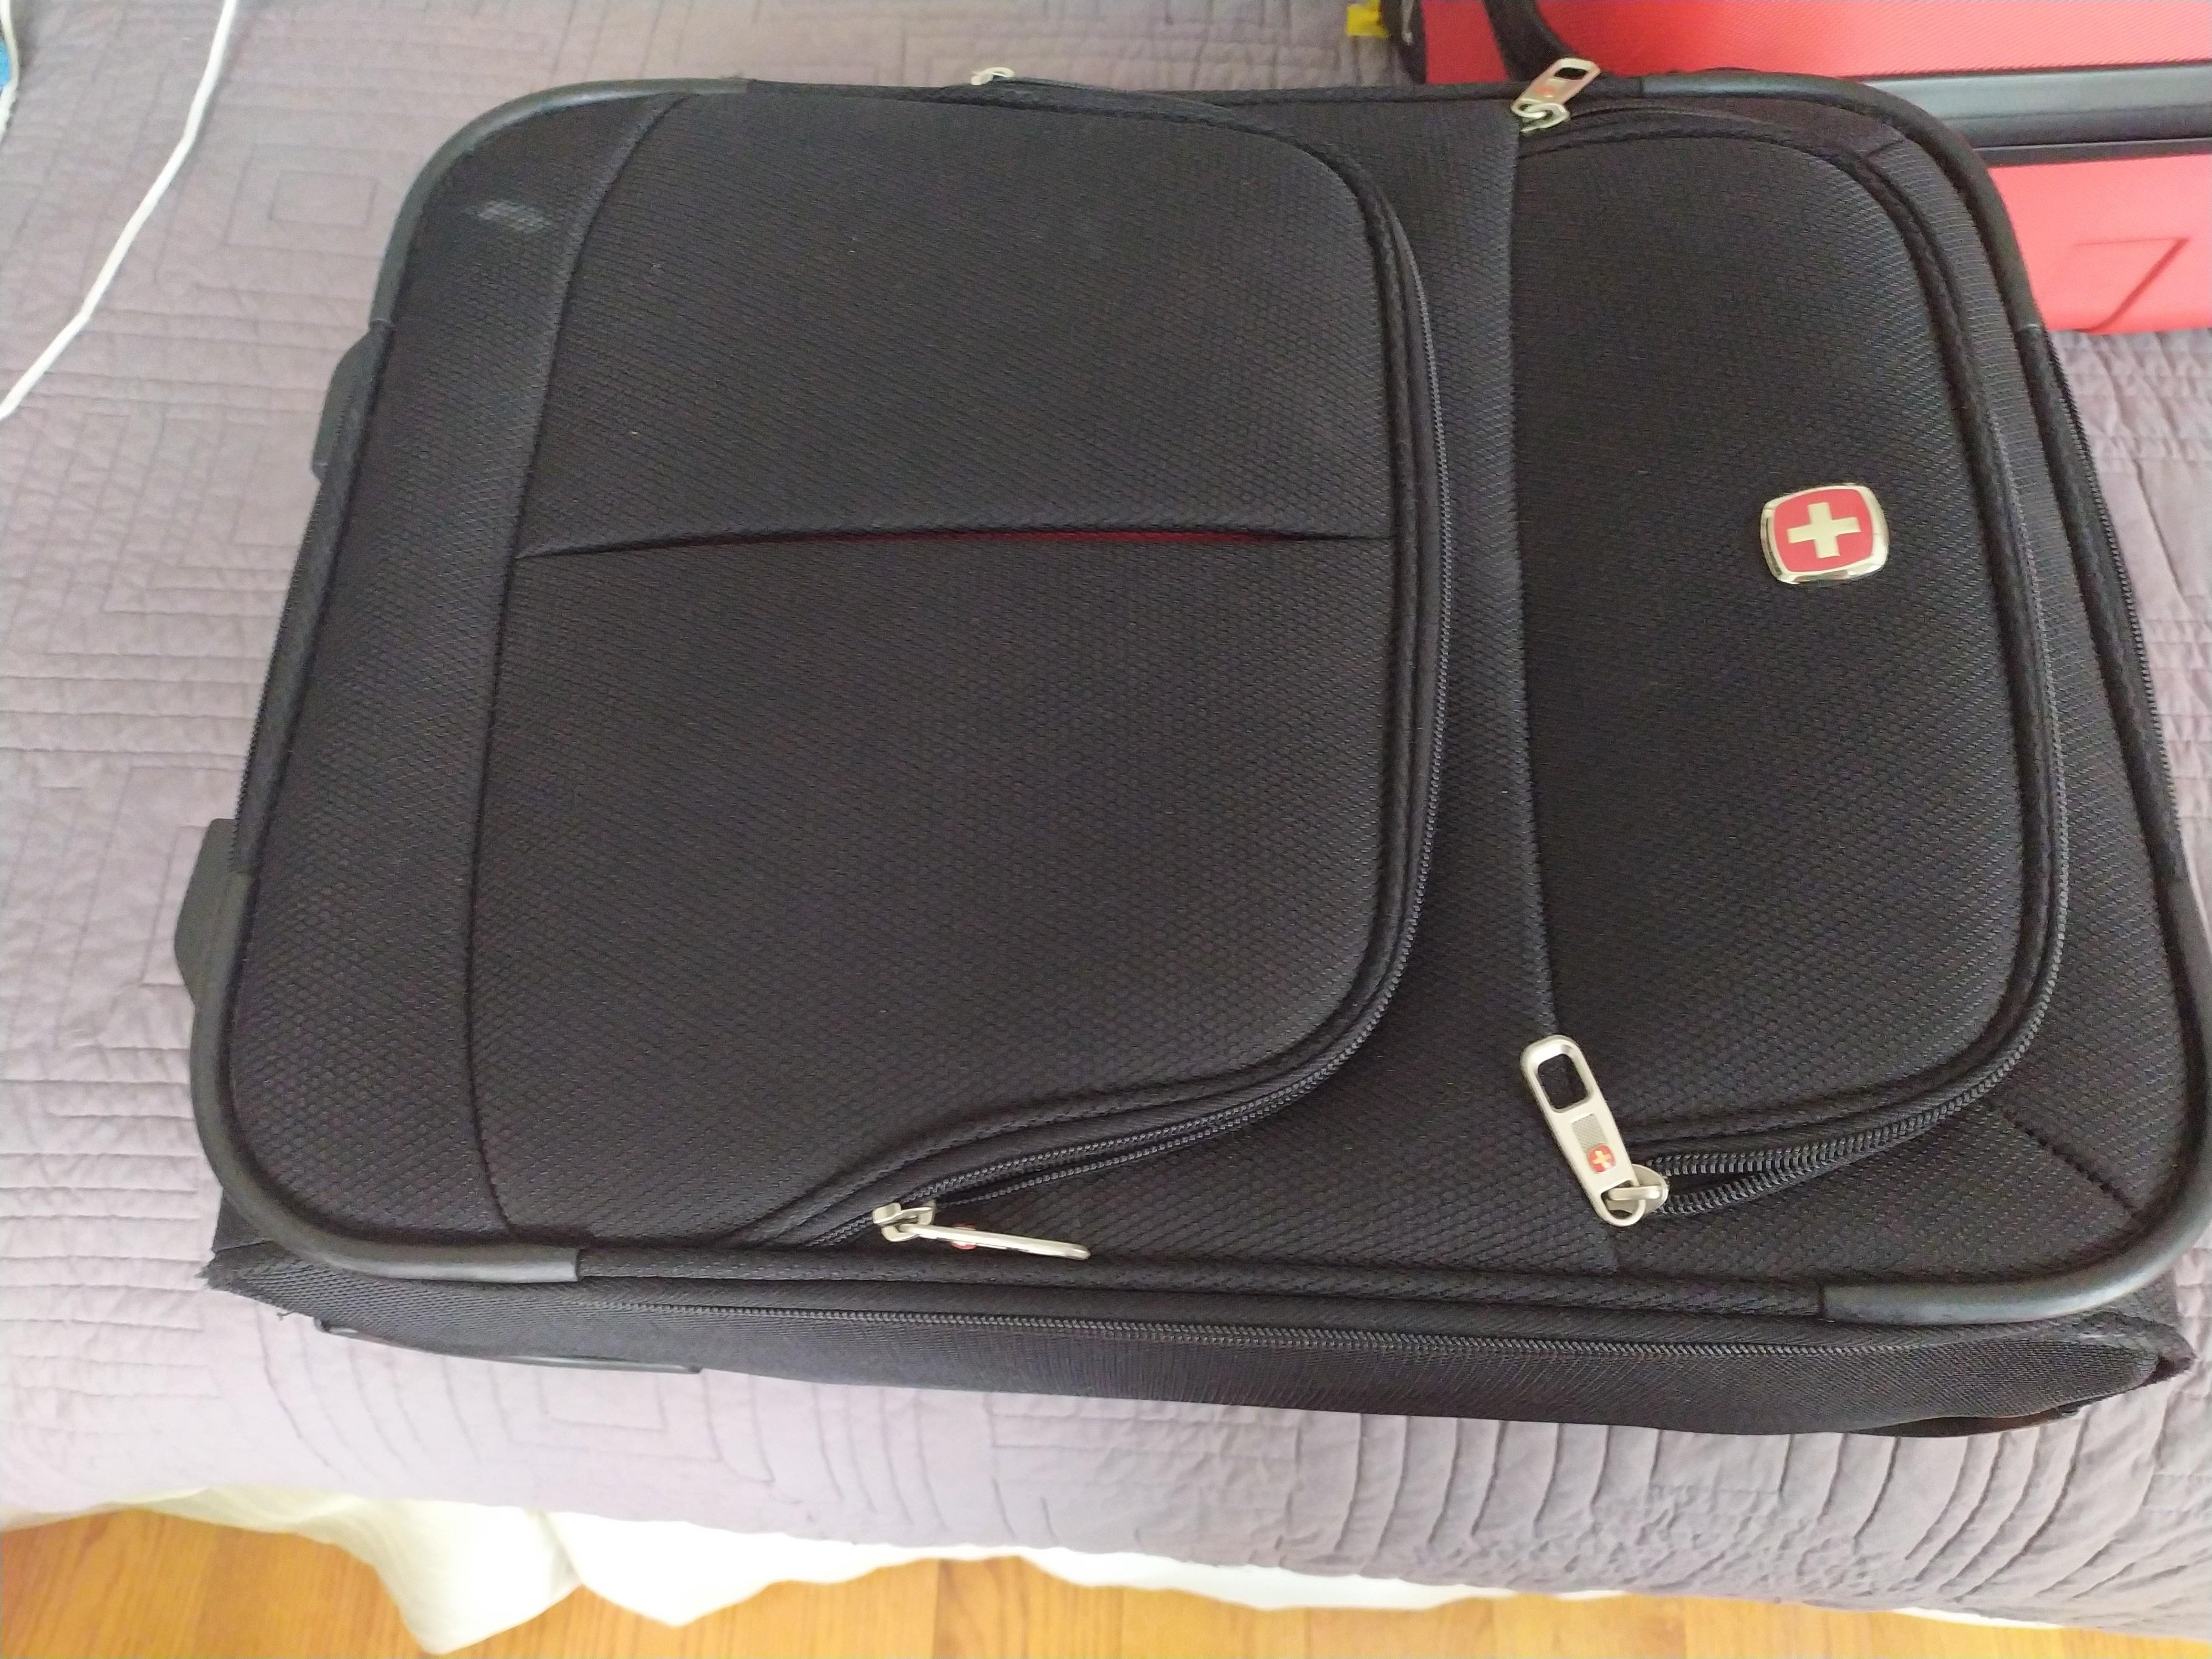 Wenger Cabin Suitcase